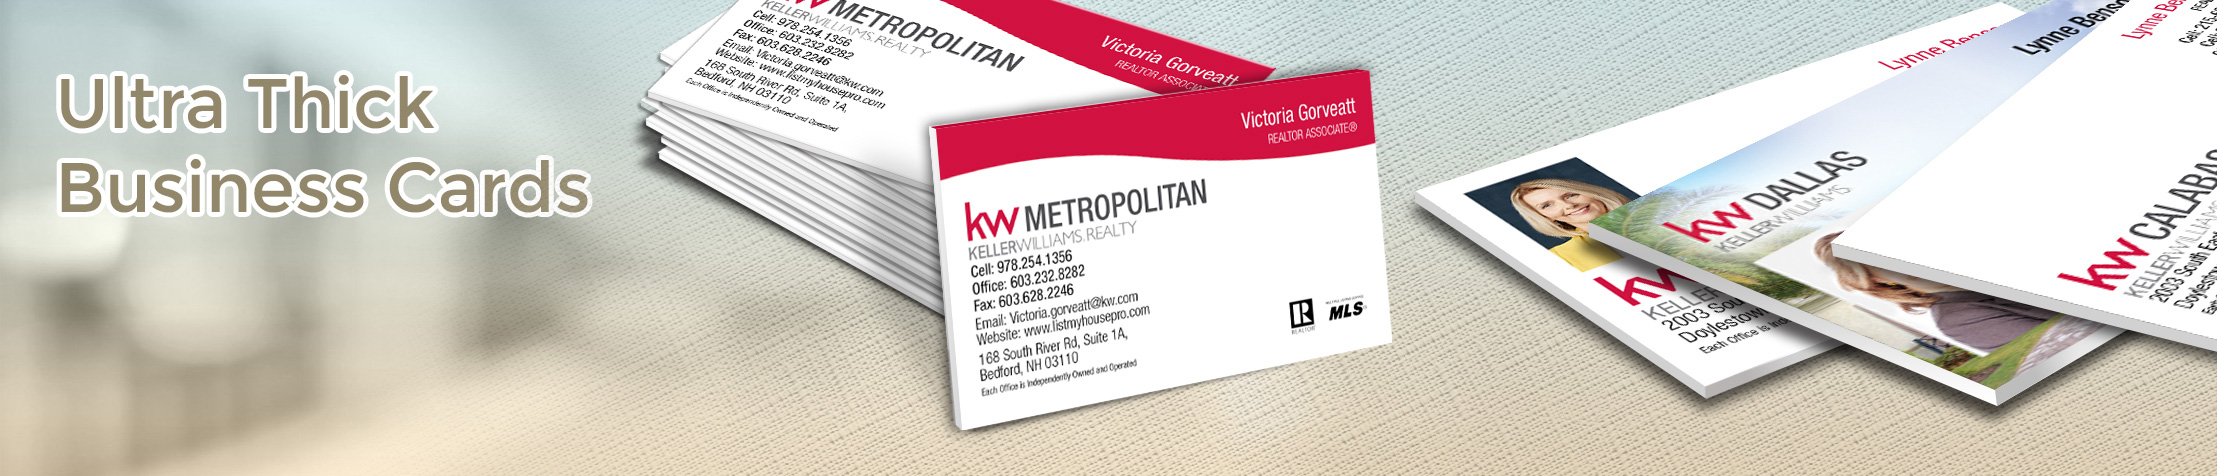 Keller Williams Real Estate Ultra Thick Business Cards - KW Approved Vendor - Luxury, Thick Stock Business Cards with a Matte Finish for Realtors | BestPrintBuy.com